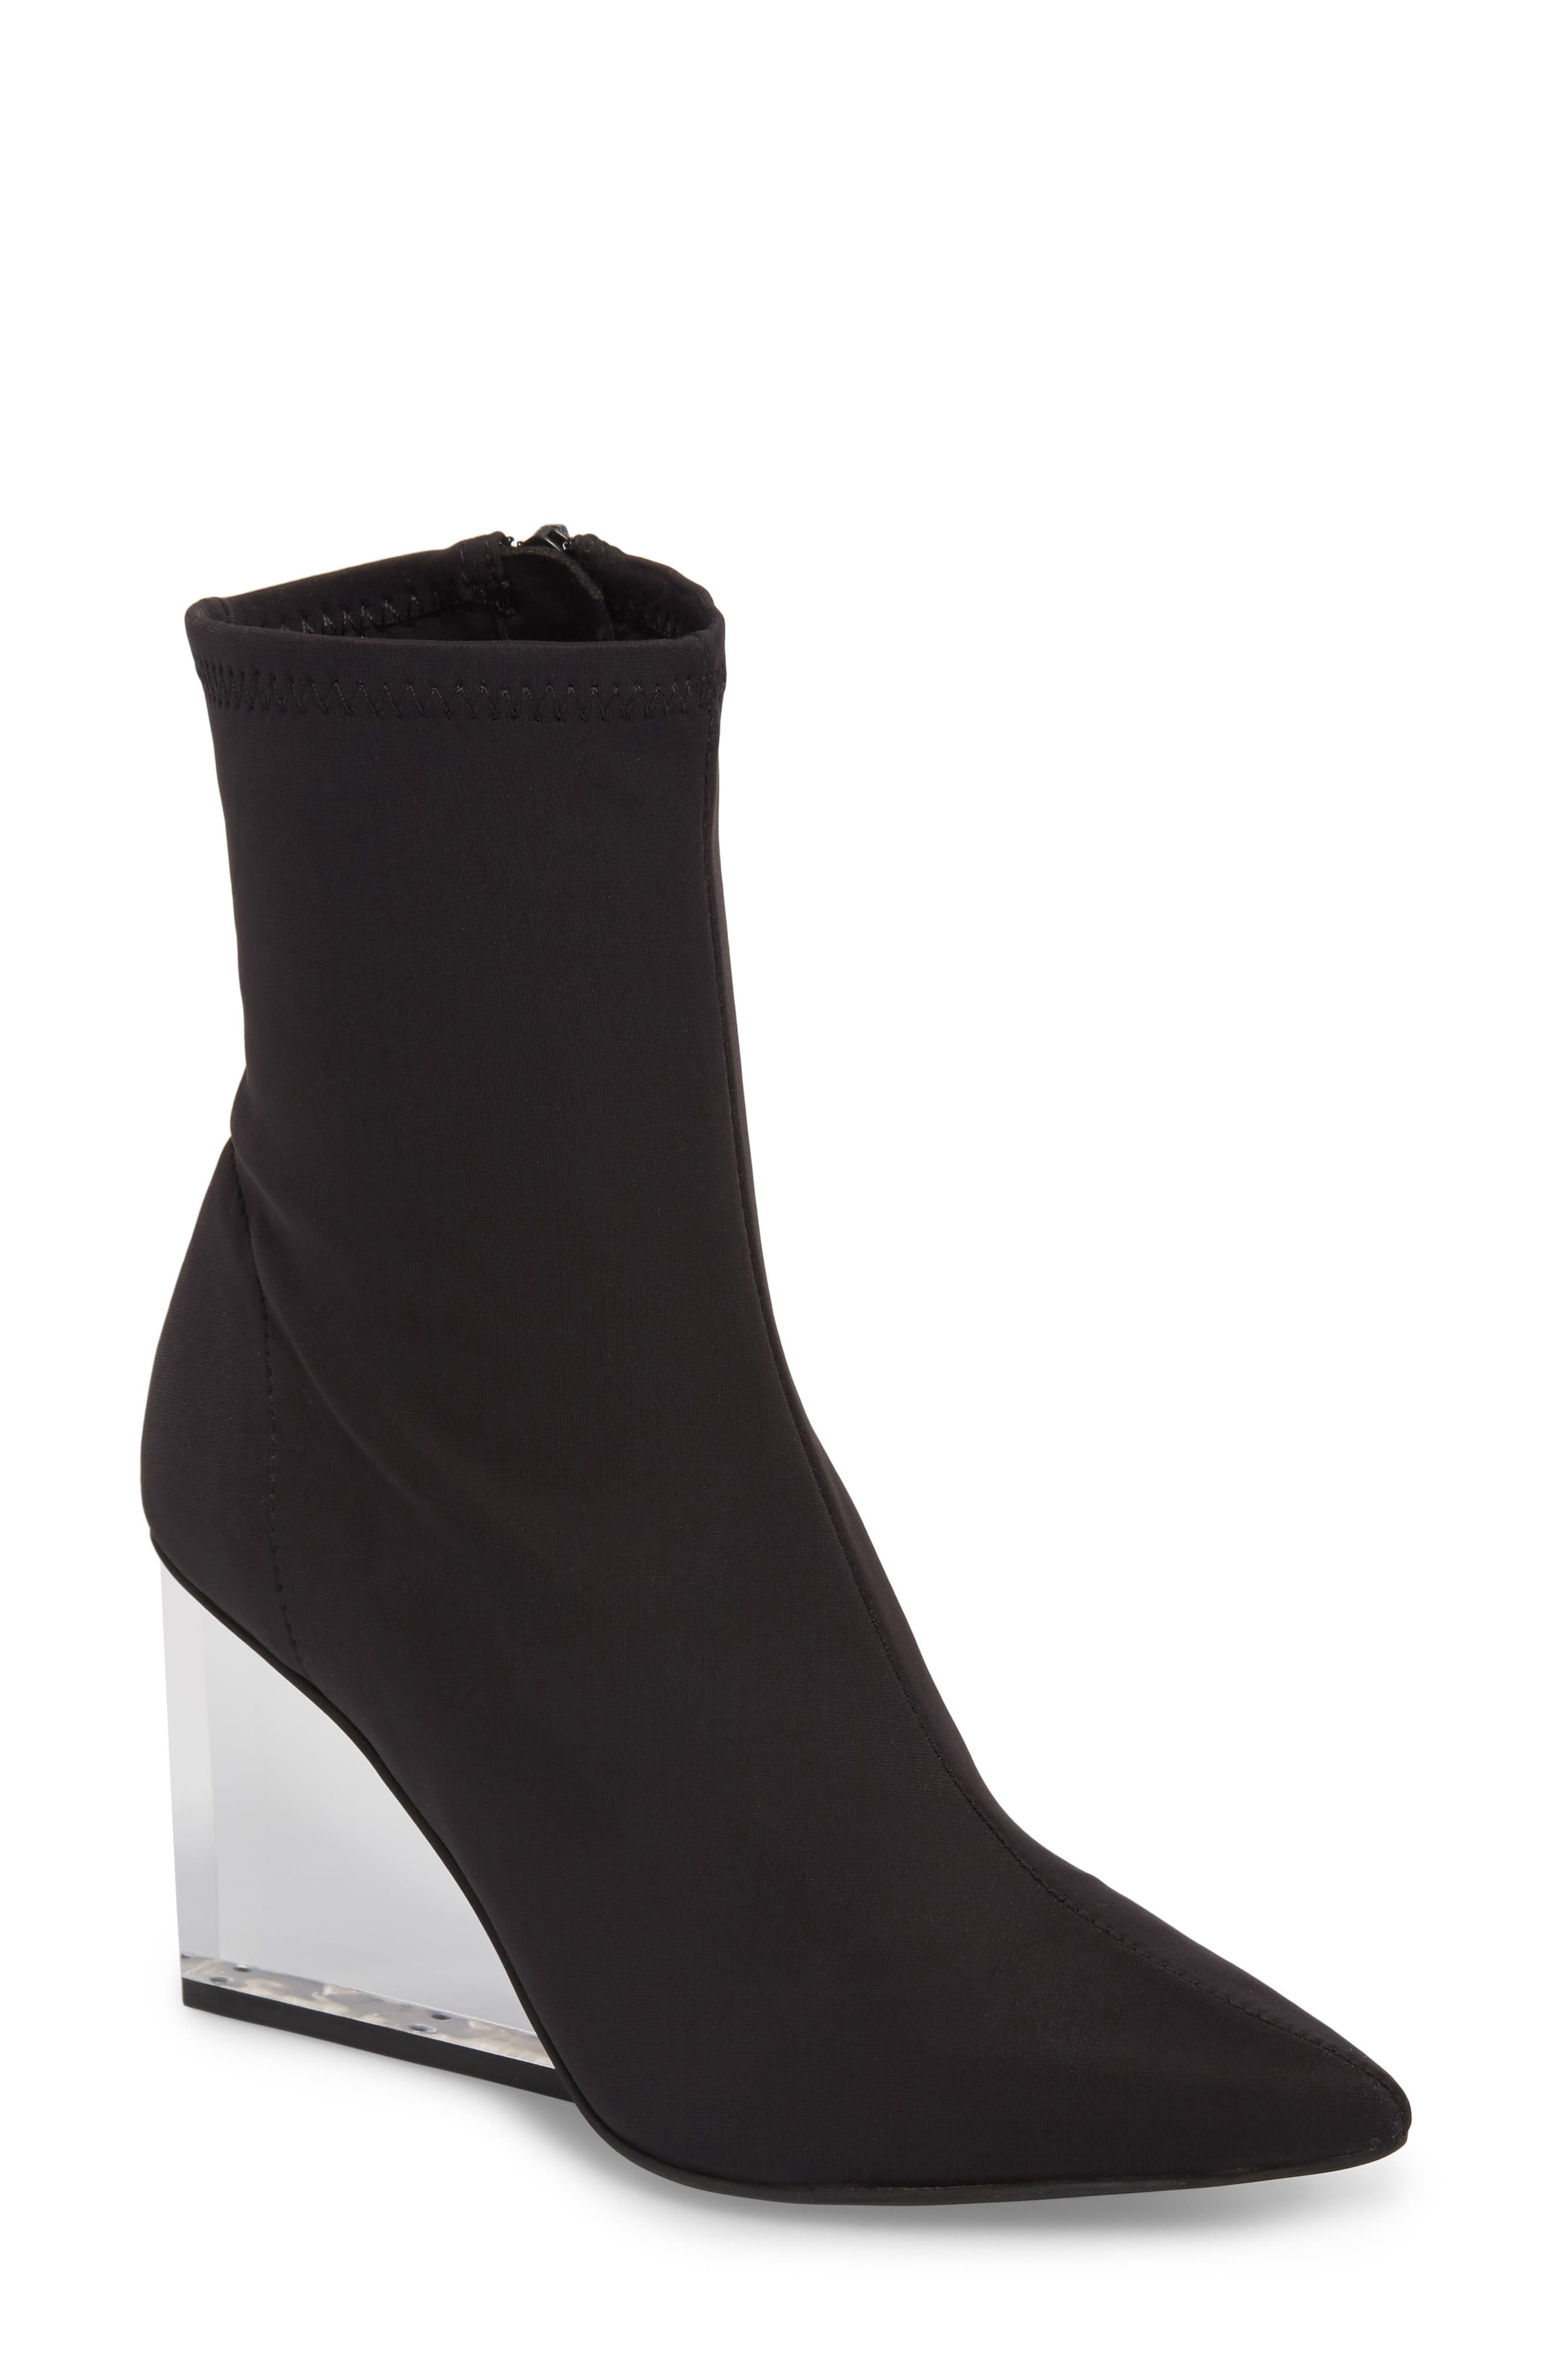 Alternate Image 1 Selected - Jeffrey Campbell Siren Clear Wedge Sock Bootie (Women)